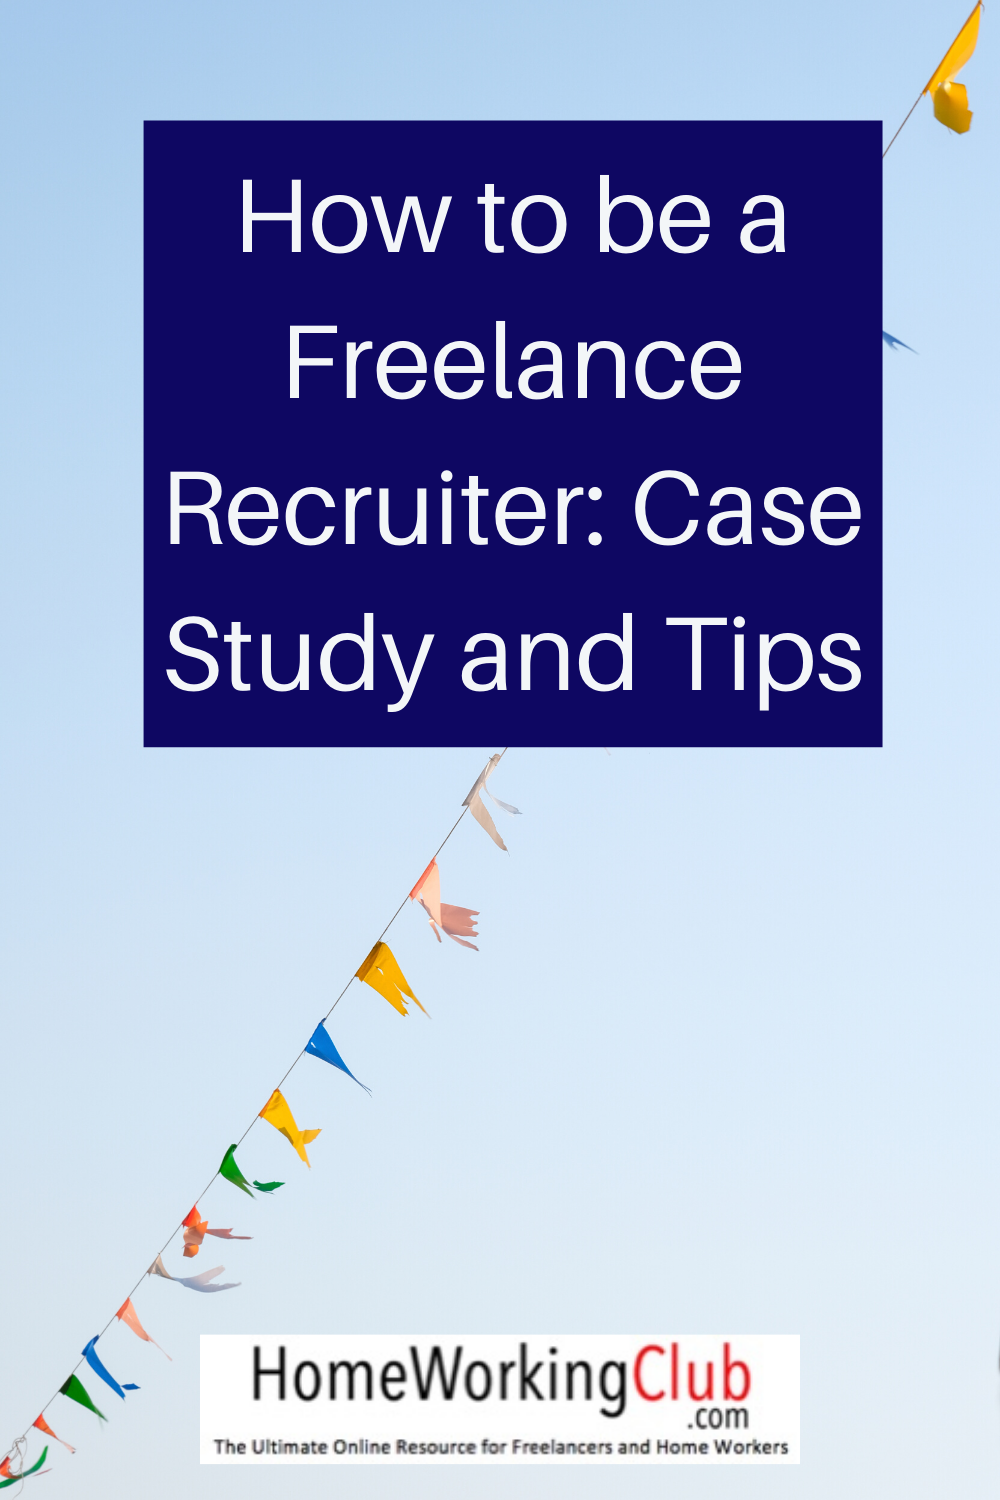 How To Be A Freelance Recruiter Case Study And Tips Homeworkingclub Com In 2020 Case Study Recruitment Business Bank Account